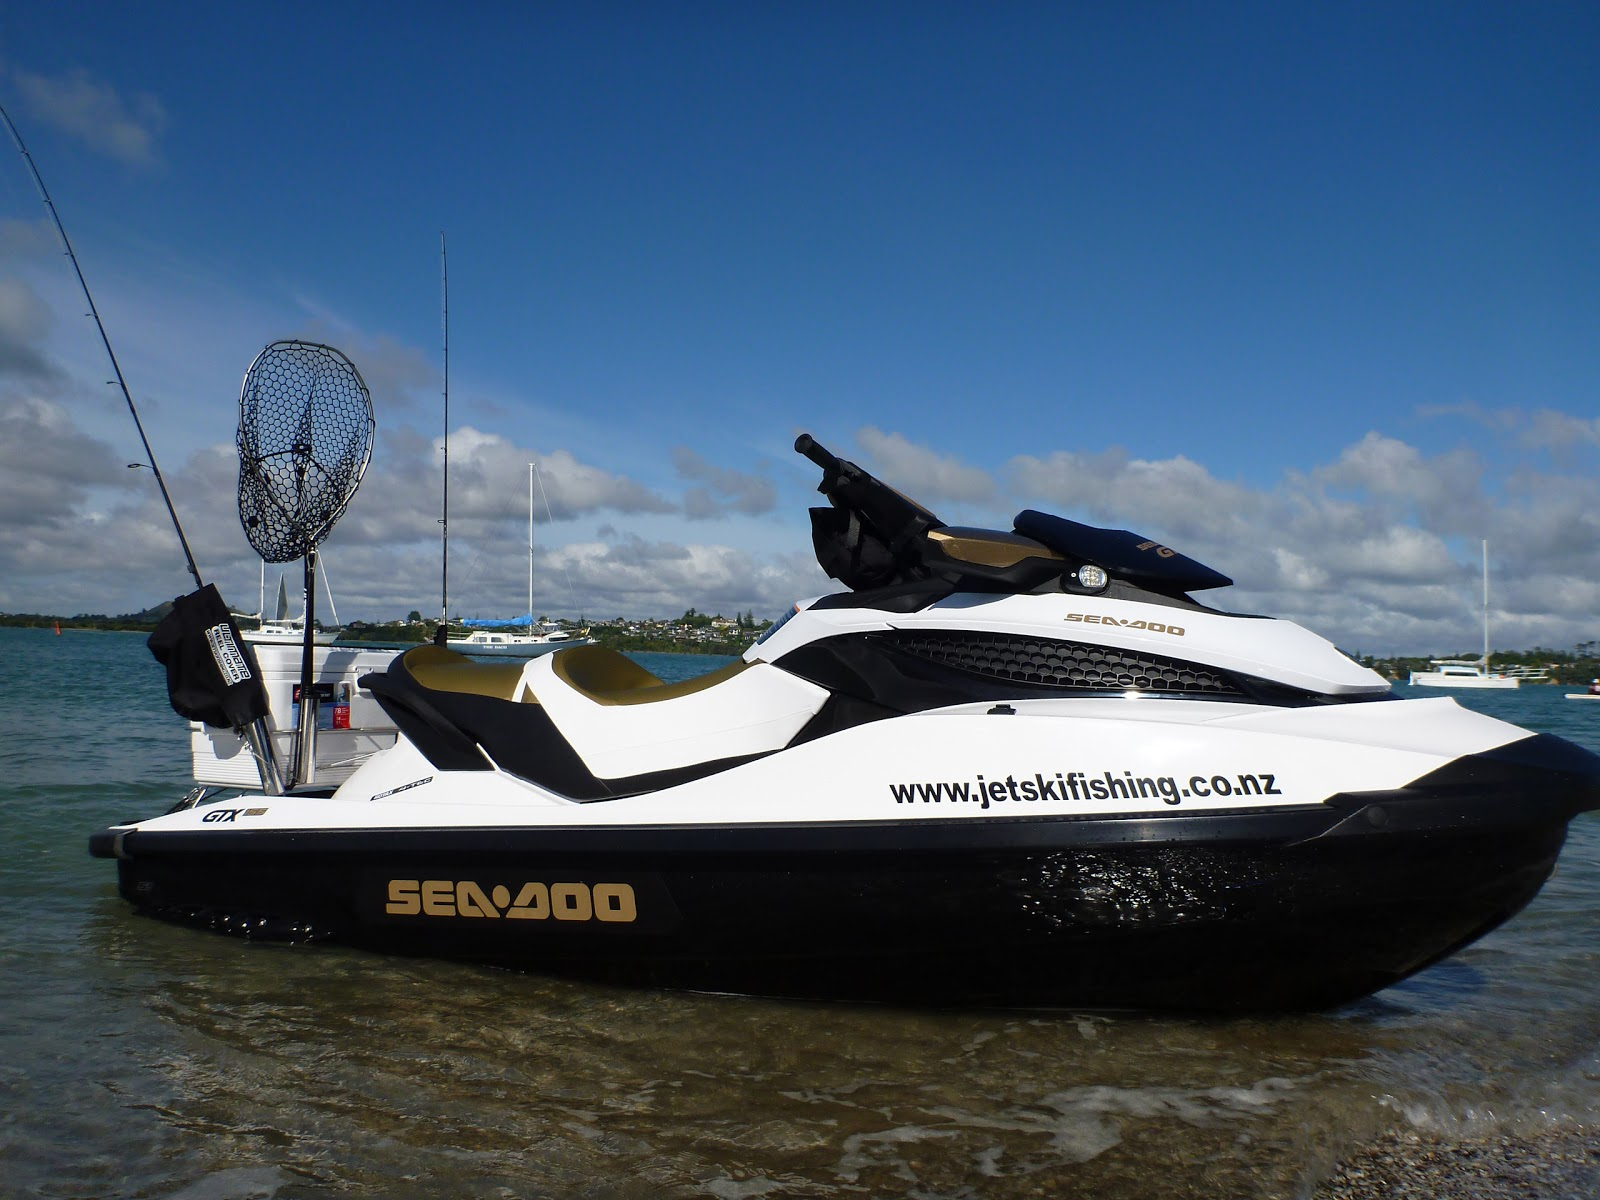 Jet ski fishing blog report 089 the latest addition to for Jet ski fishing accessories